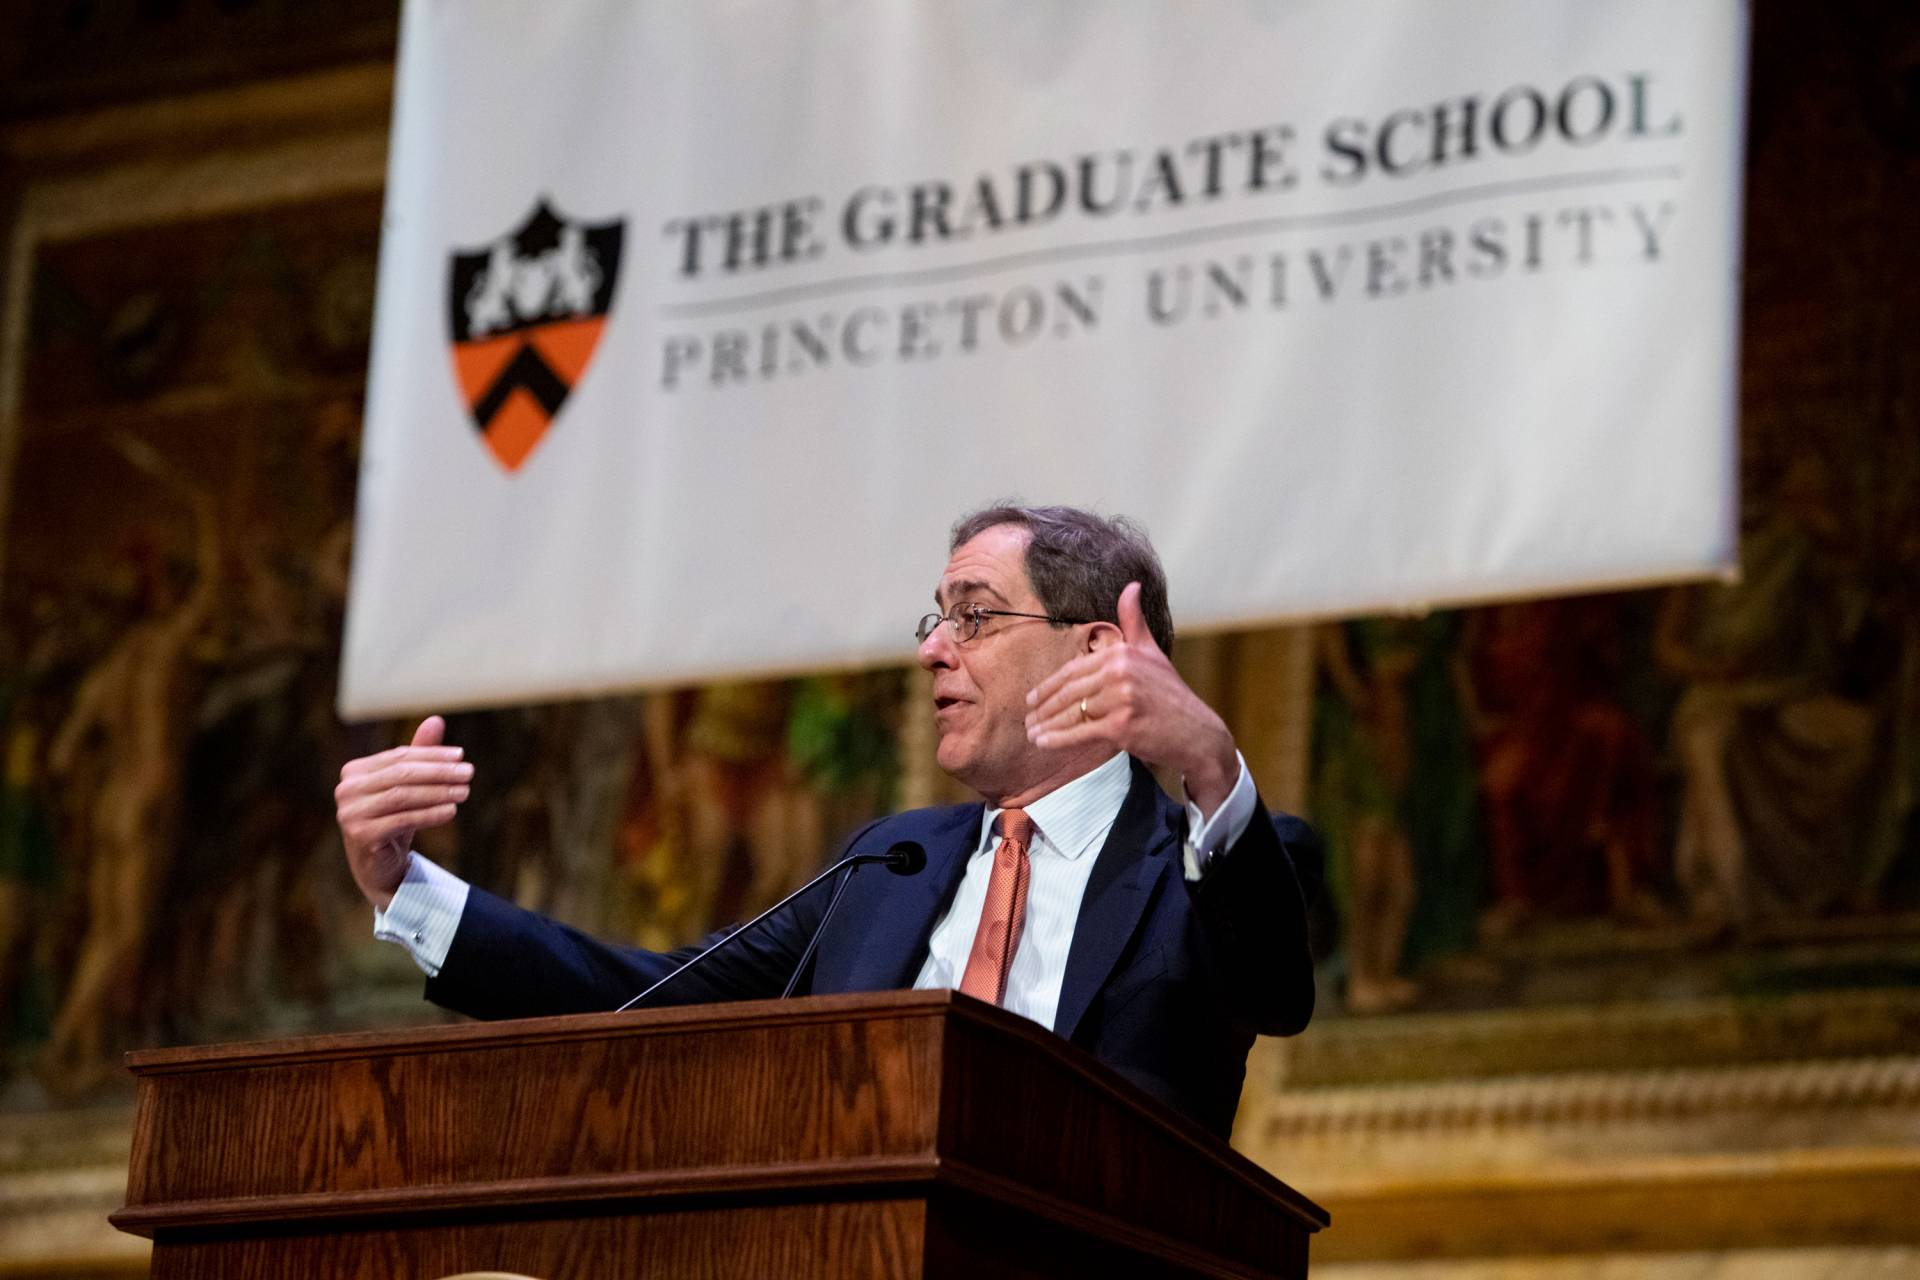 Christopher Eisgruber welcomes graduate students